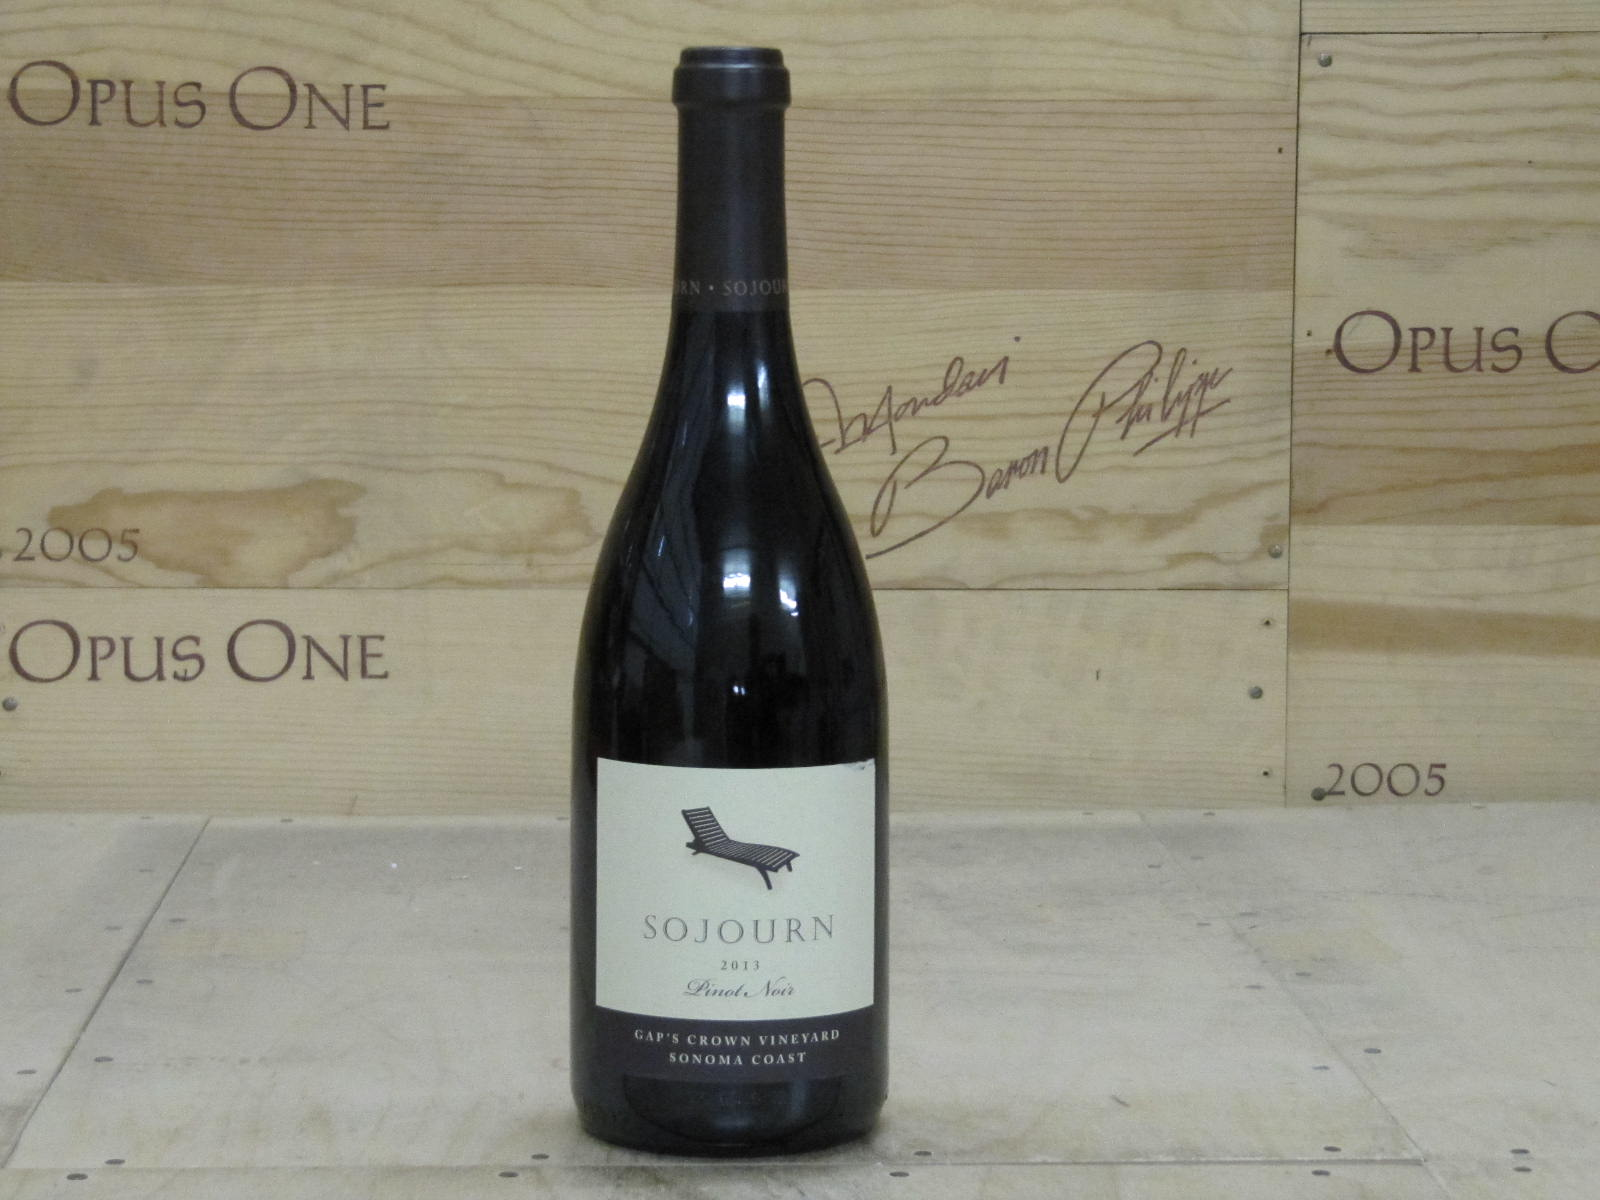 2013 Sojourn Cellars Pinot Noir Gap's Crown, Sonoma Coast RP--95